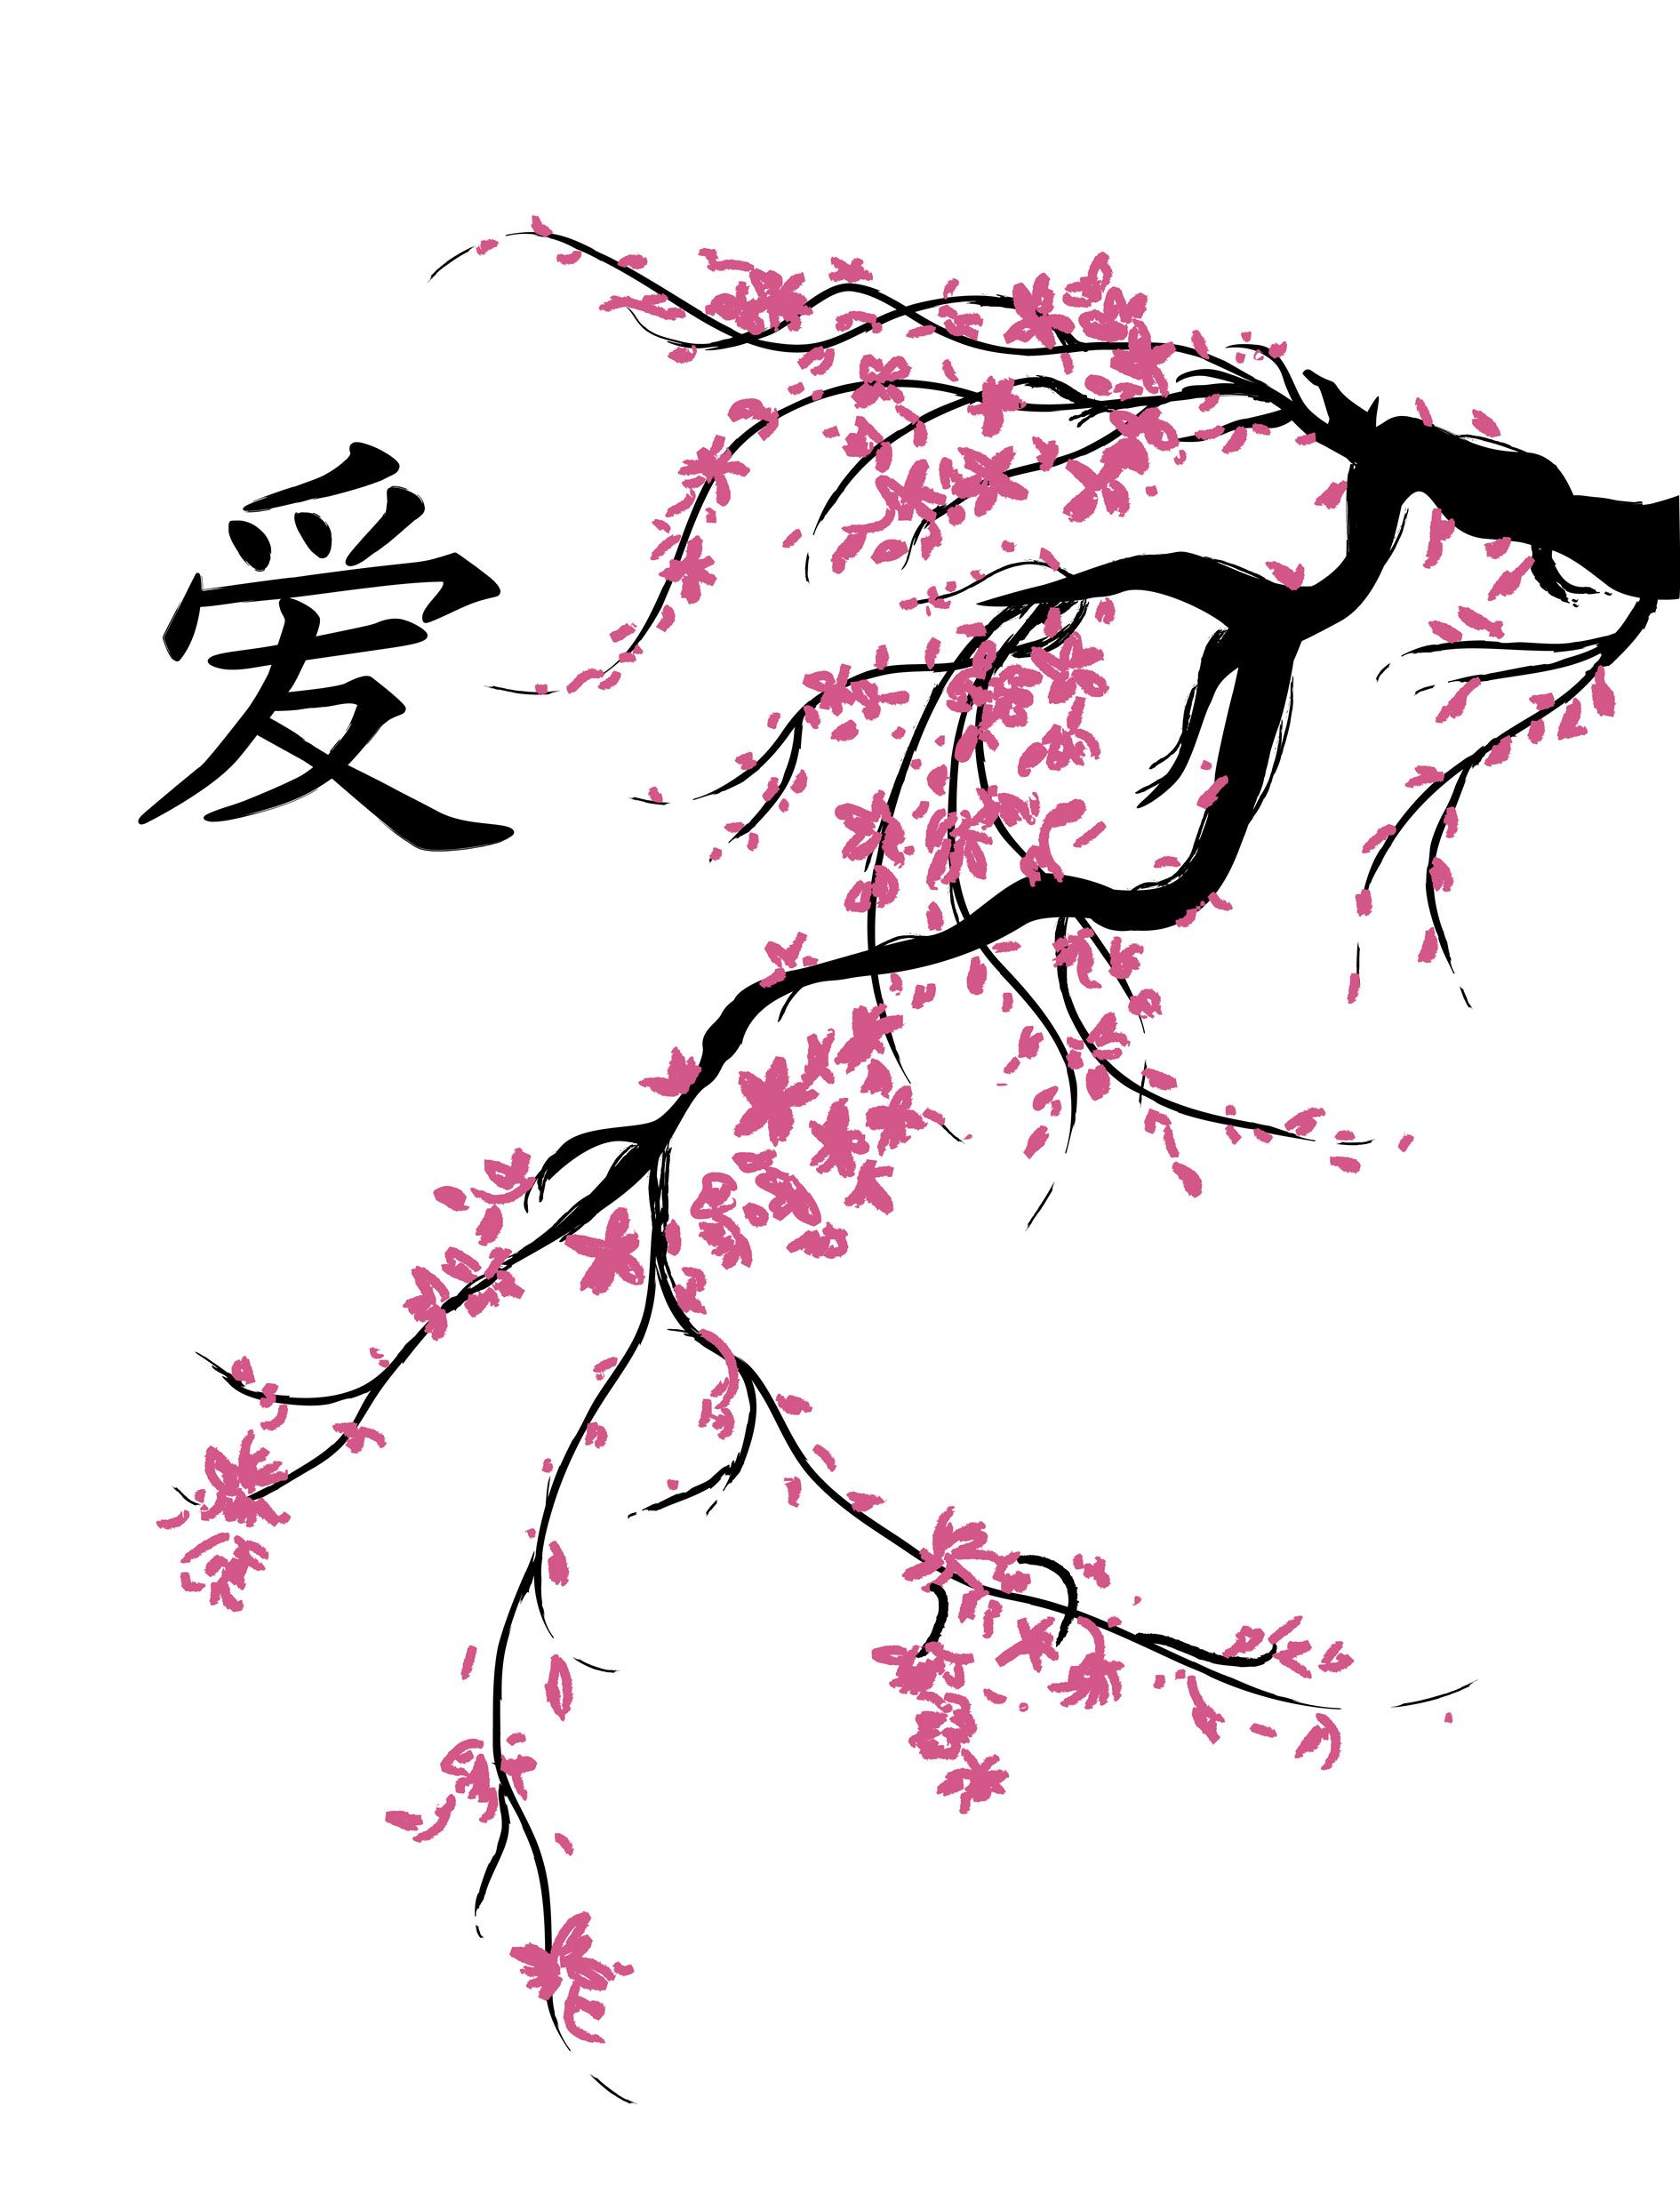 The Cherry Blossom Is Used In Feng Shui To Usher In New Beginnings